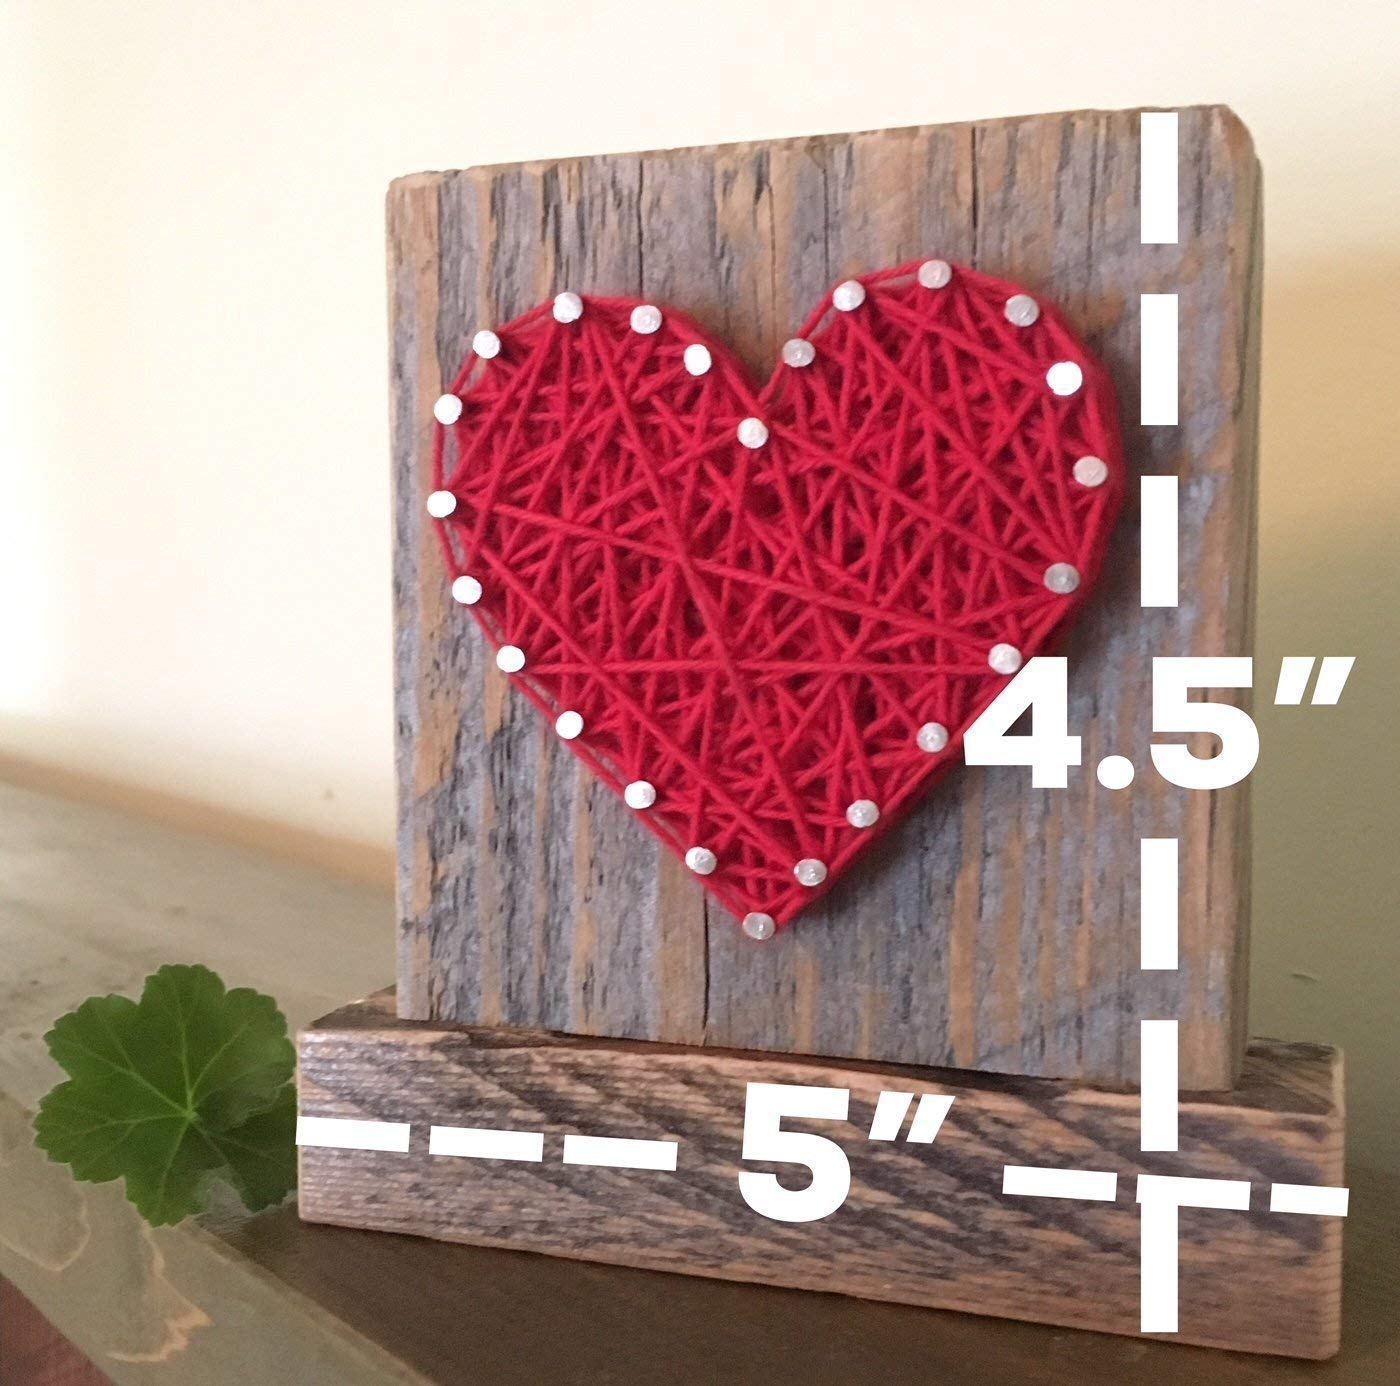 Sweet & small freestanding wooden red string art heart block sign. Perfect for home accents, Wedding favors, Anniversaries, housewarming, teacher, congratulations & just because. by Nail it Art by Nail it Art (Image #2)